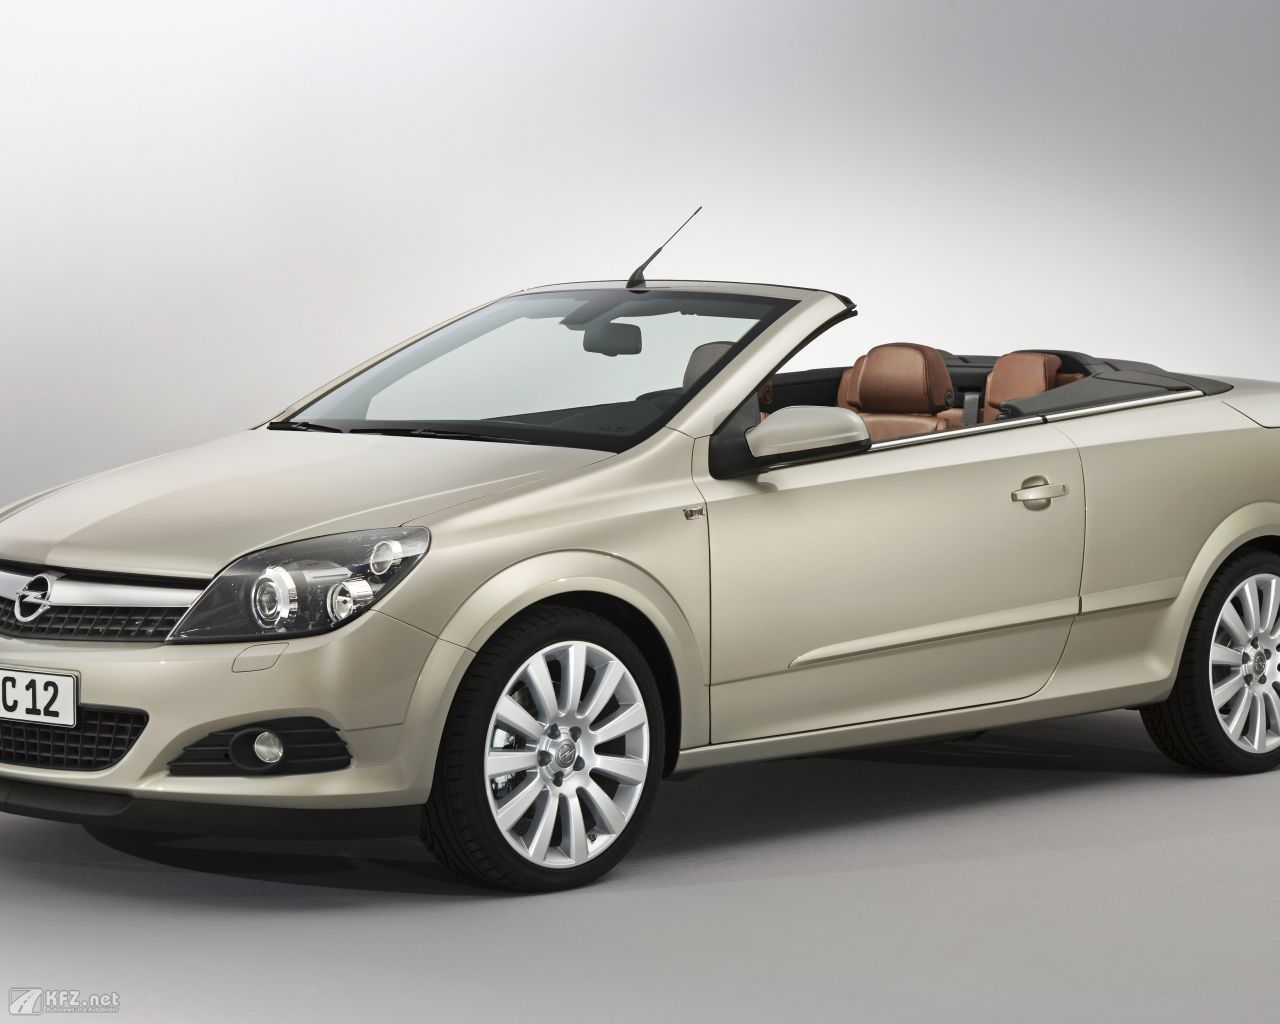 opel-astra-twintop-1280x1024-5